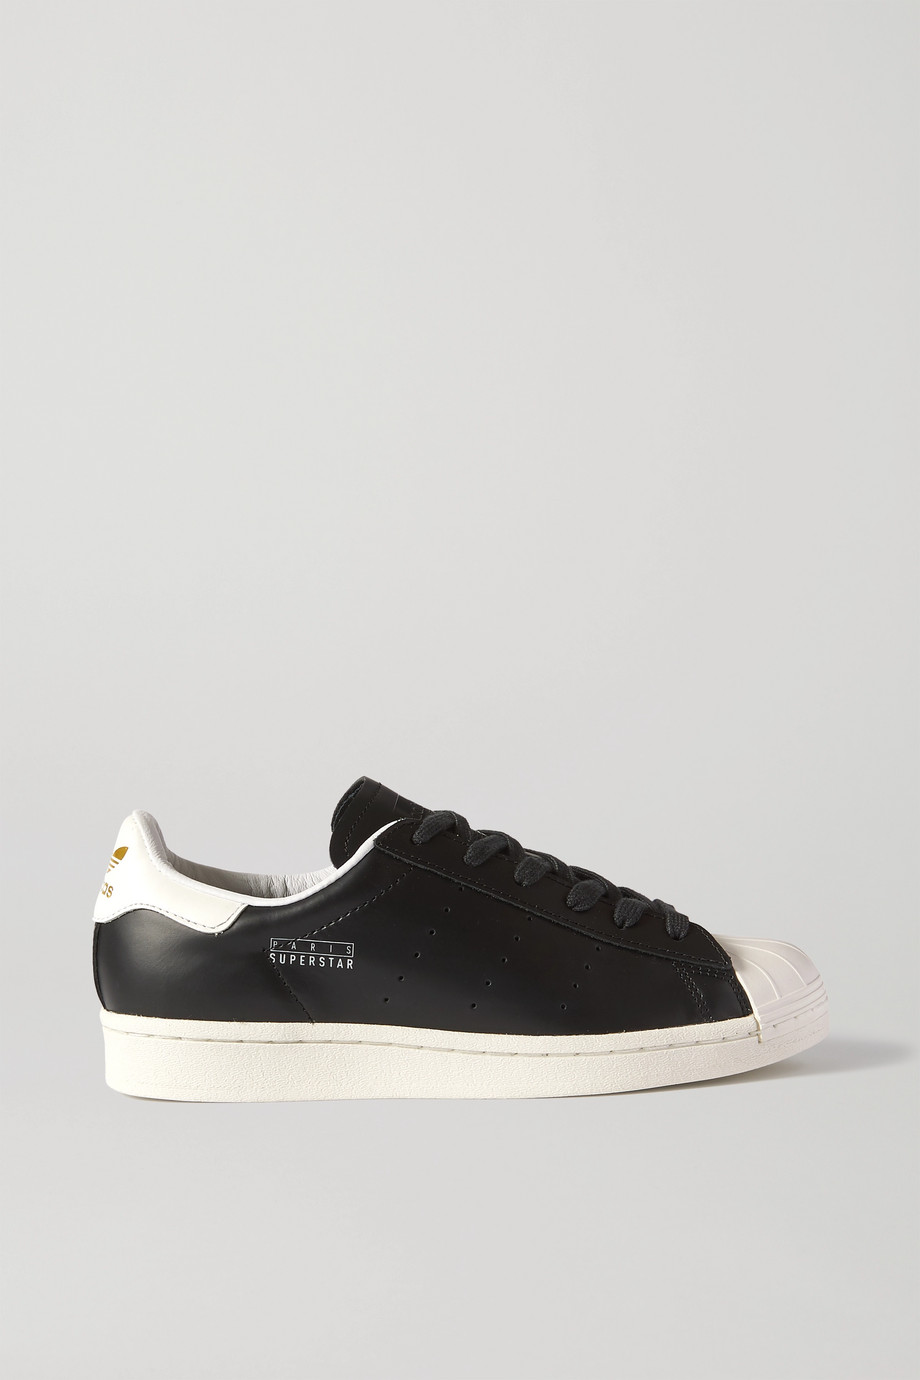 adidas Originals Paris Superstar leather sneakers